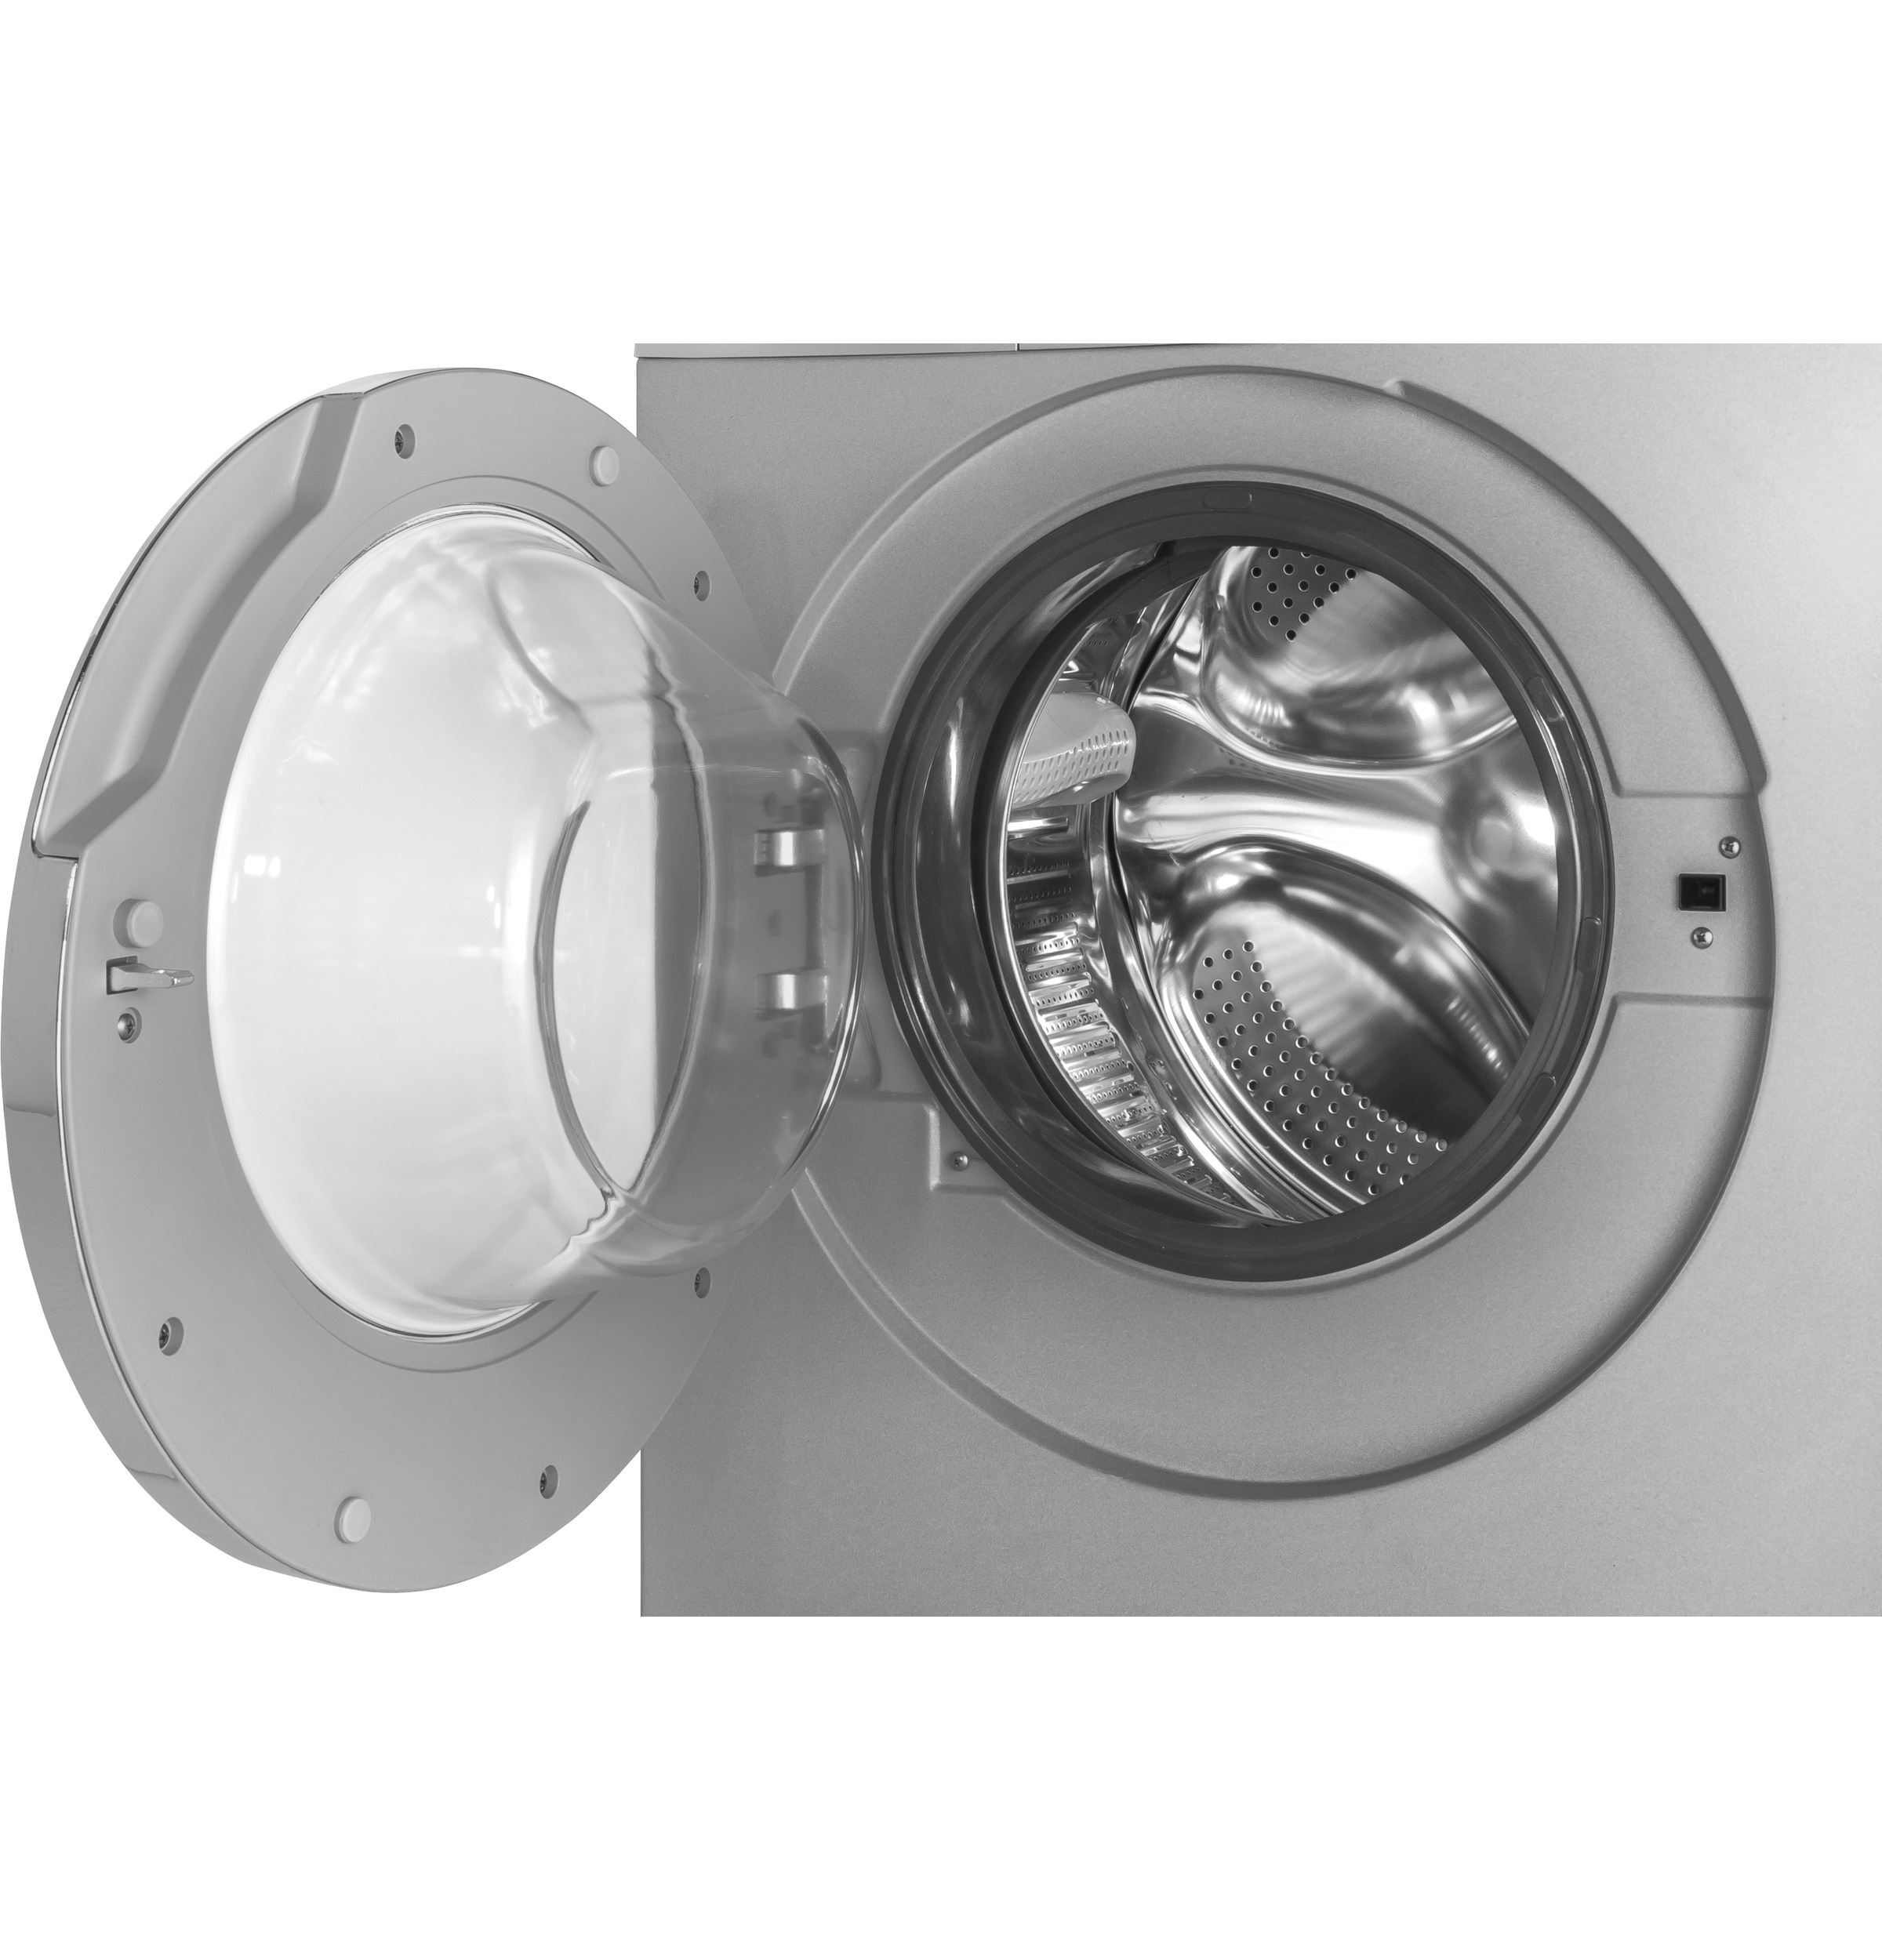 "Model: HLC1700AXS | Haier 24"" 2.0 cu. ft. Front Load Washer/Dryer Combo"